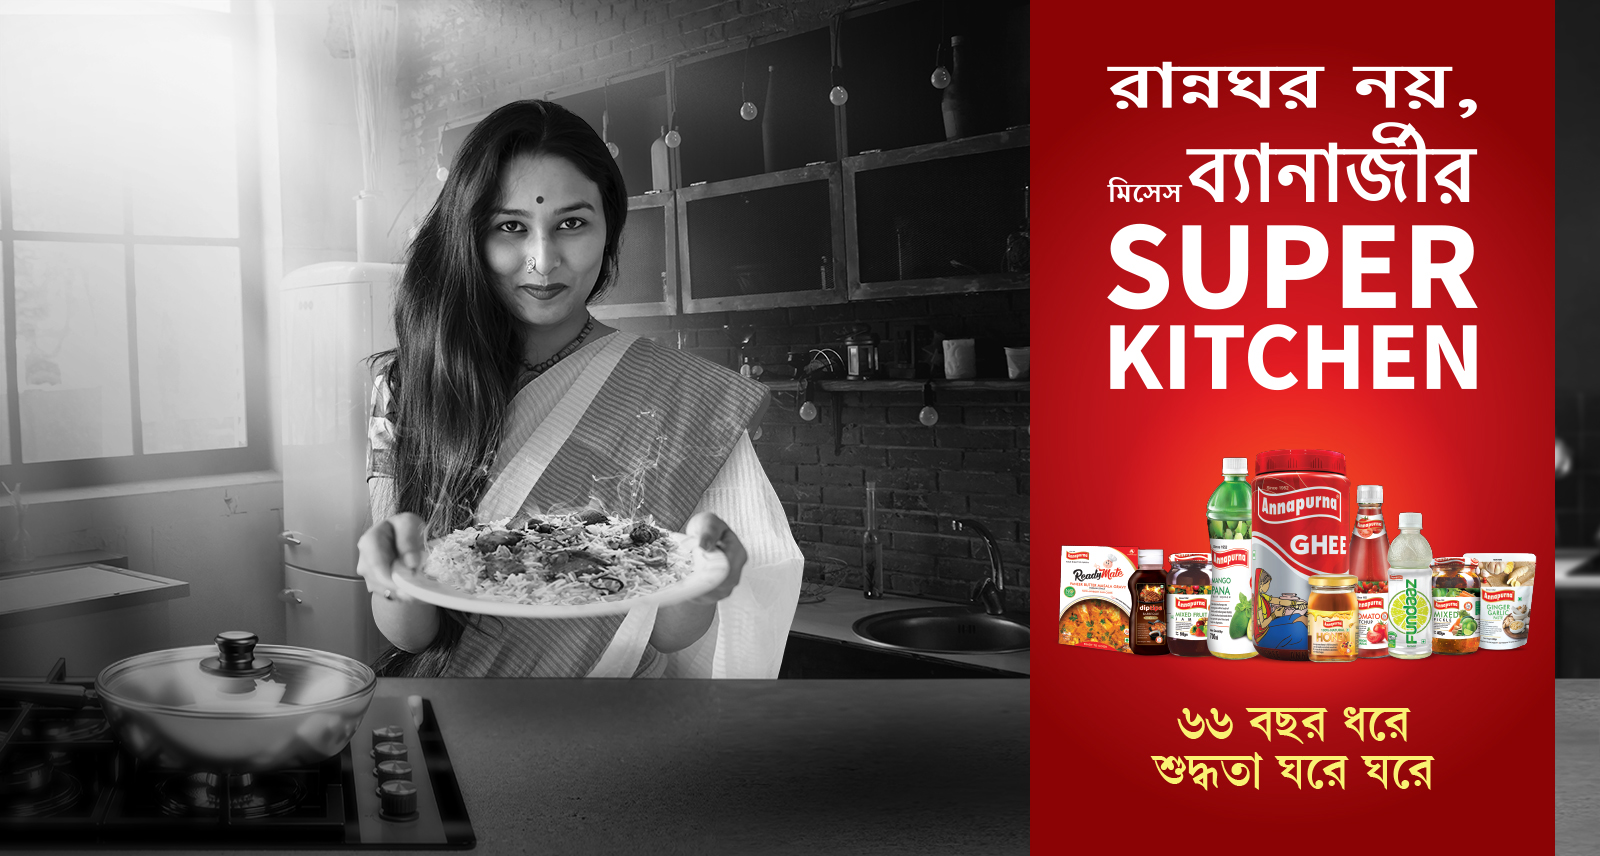 Super kitchen web banner